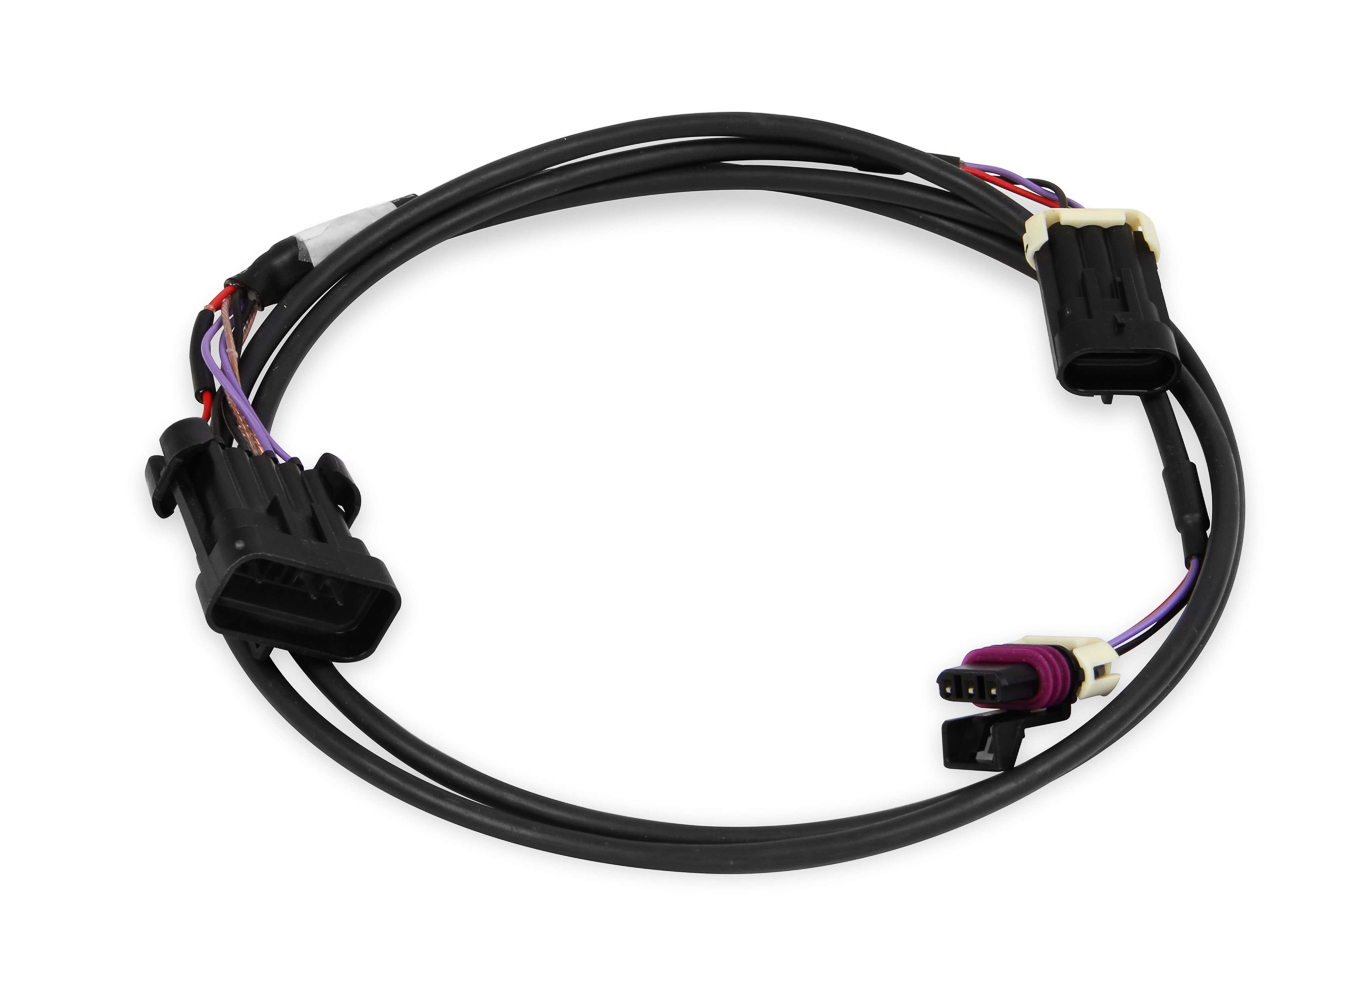 Holley 558-431 EFI Wiring Harness, Camshaft Ignition Harness, Holley Hp / Dominator EFI, Universal, Kit